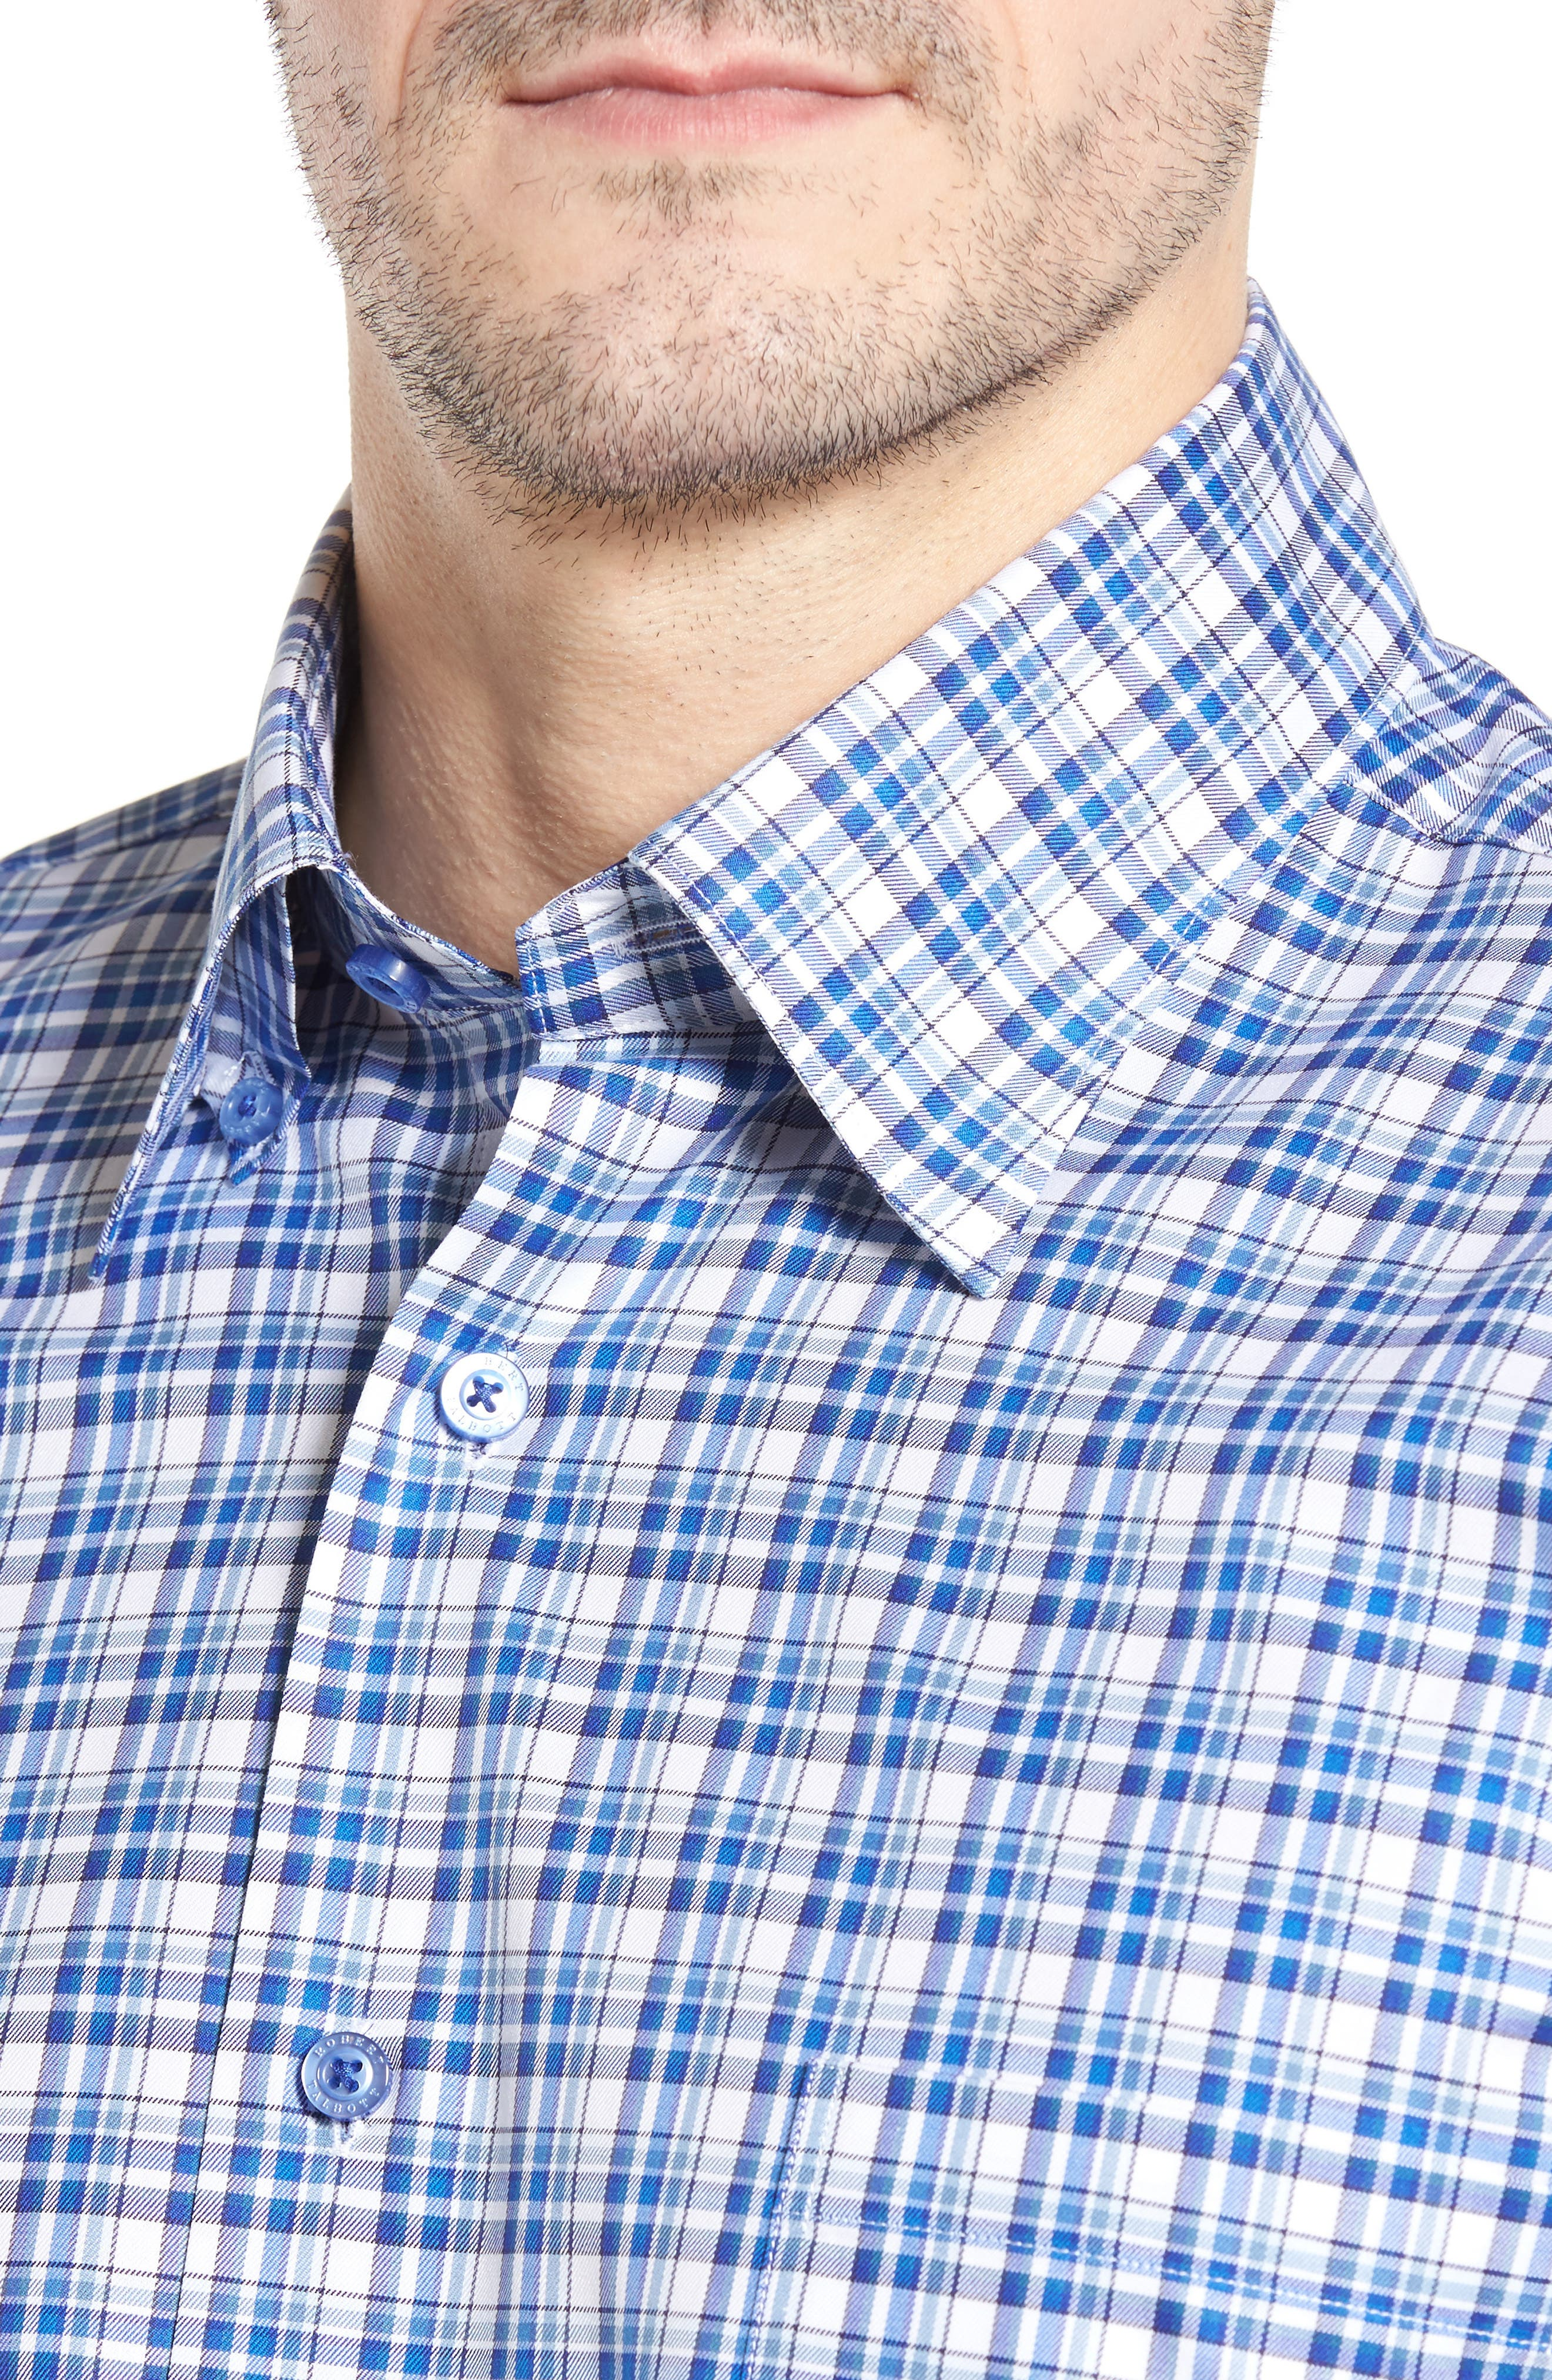 Anderson Classic Fit Plaid Micro Twill Sport Shirt,                             Alternate thumbnail 4, color,                             417